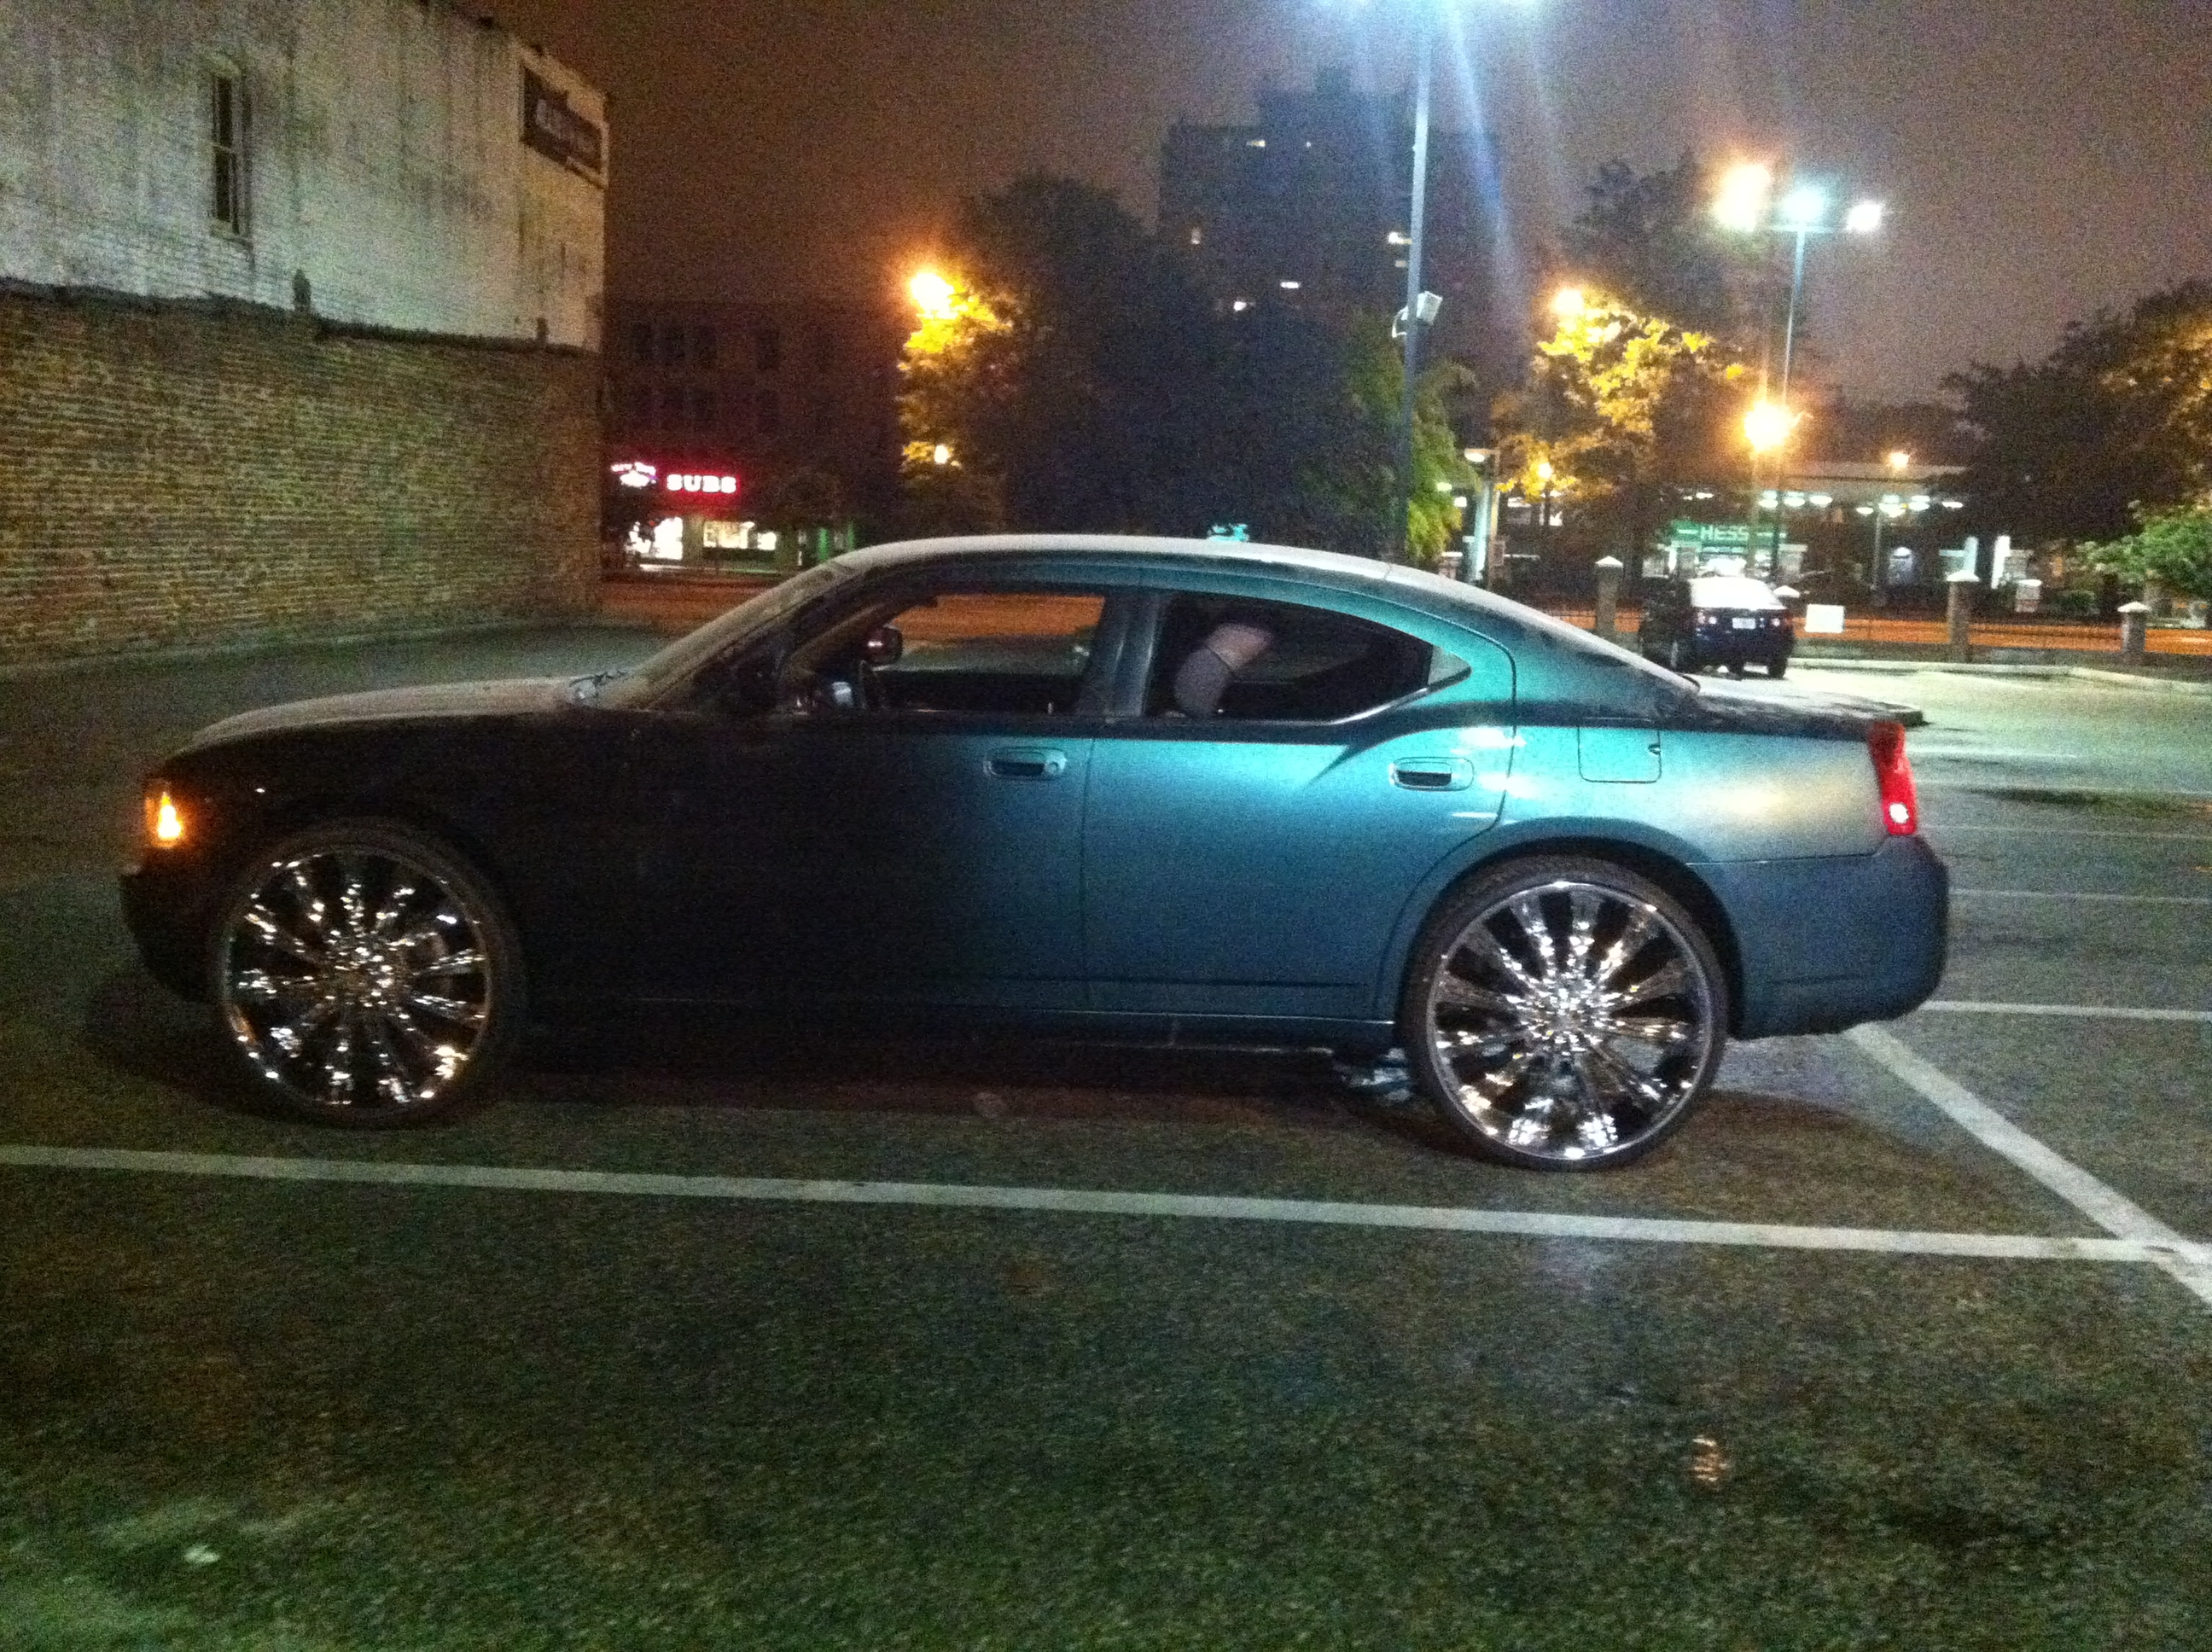 Boygohard's 2006 Dodge Charger